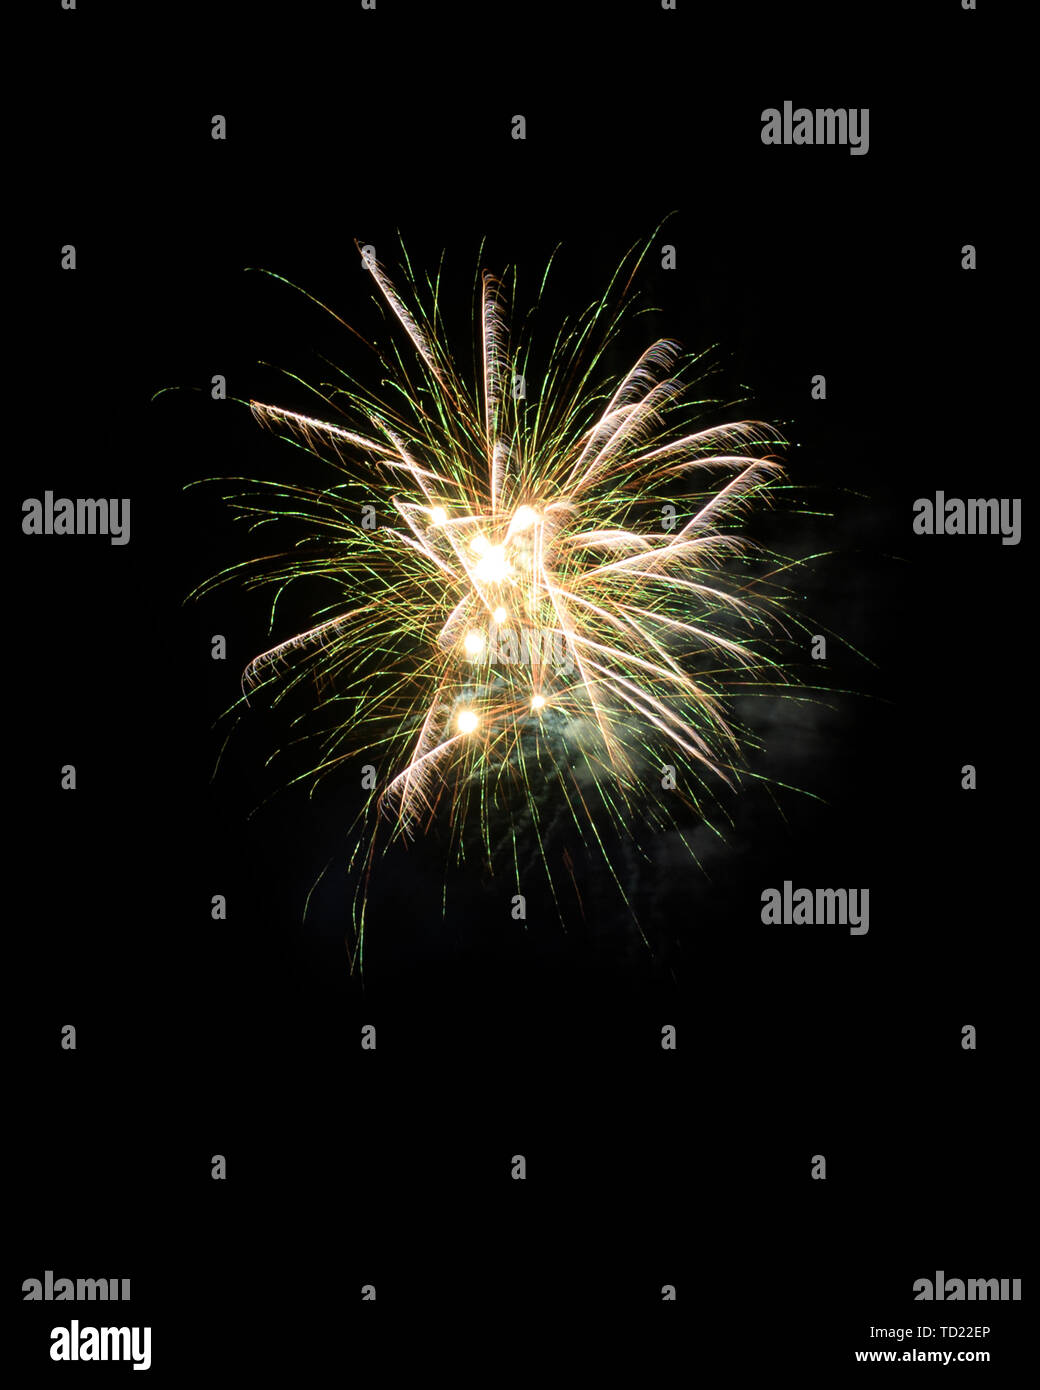 Fireworks background picture Stock Photo